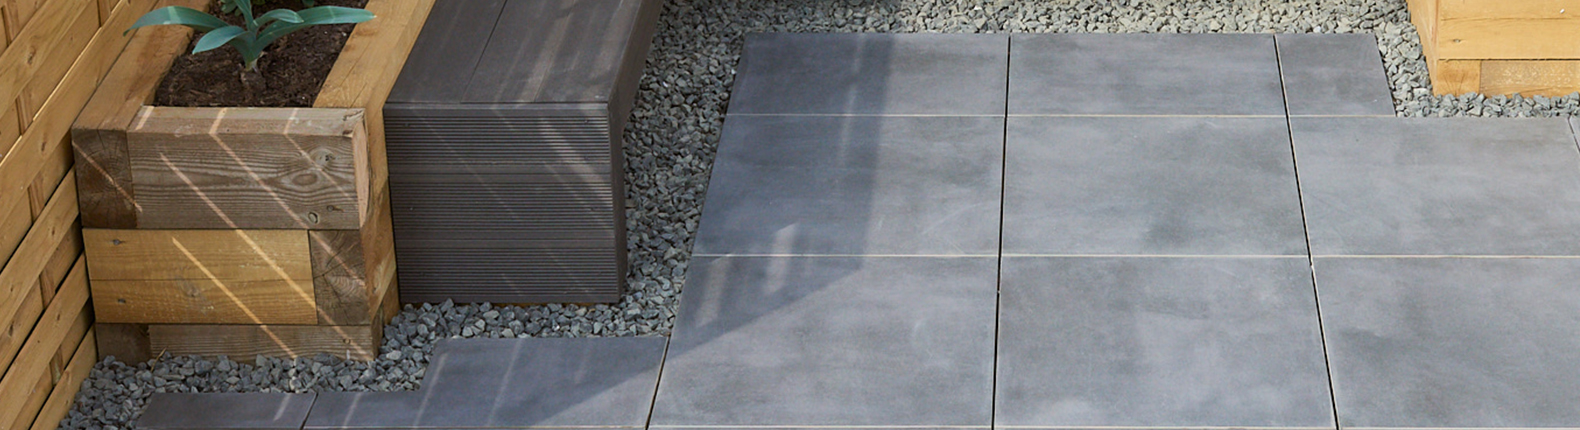 Garden Patio - Porcelain